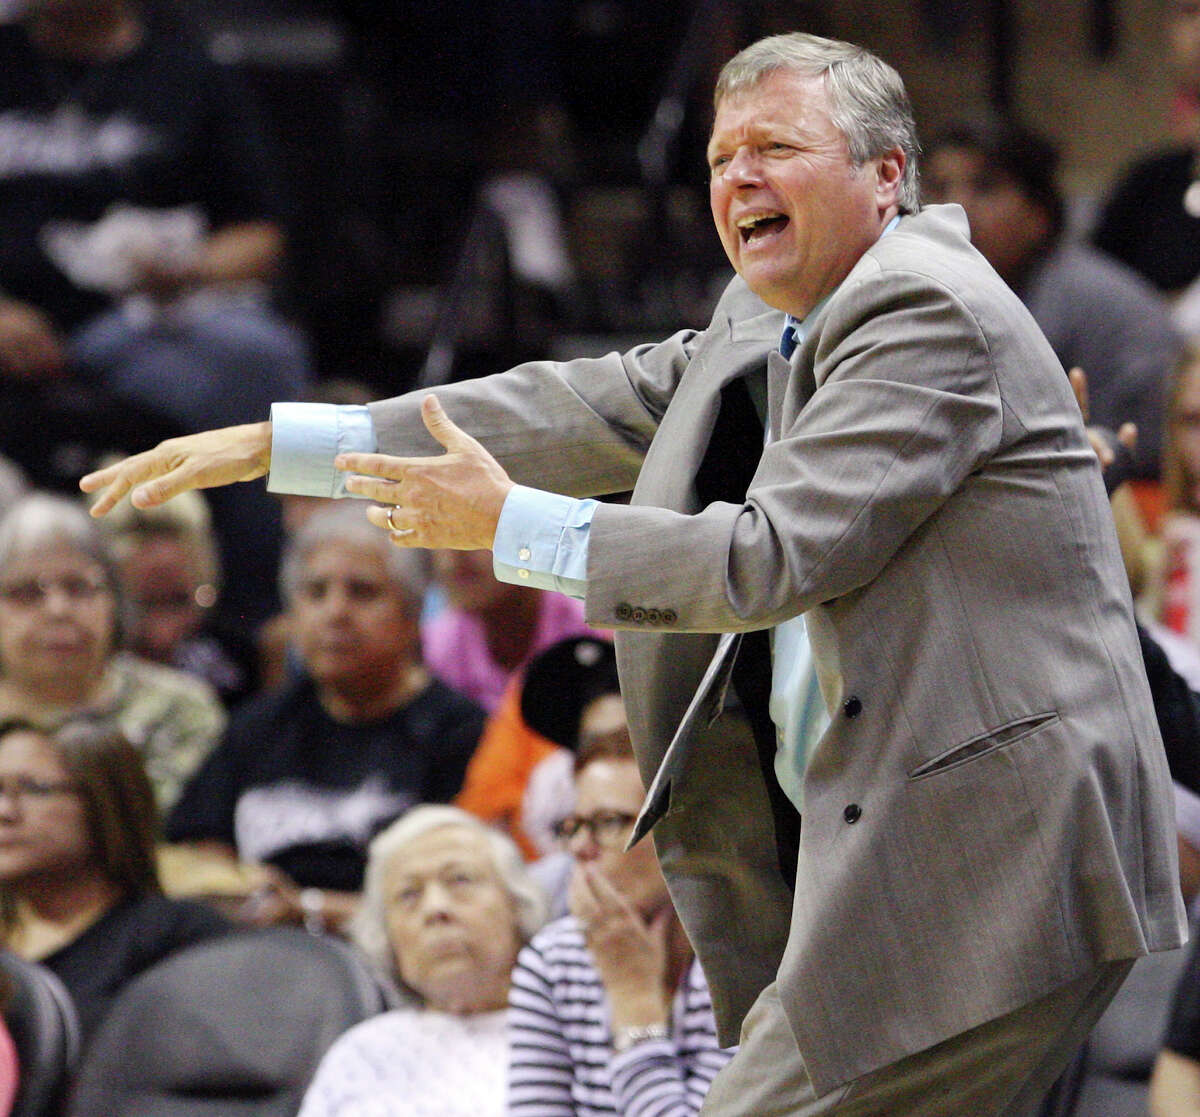 Silver Stars' headcoach Dan Hughes reacts after a call during second half action against the Dream Friday, July 13, 2012 at the AT&T Center. The Stars won 91-70.